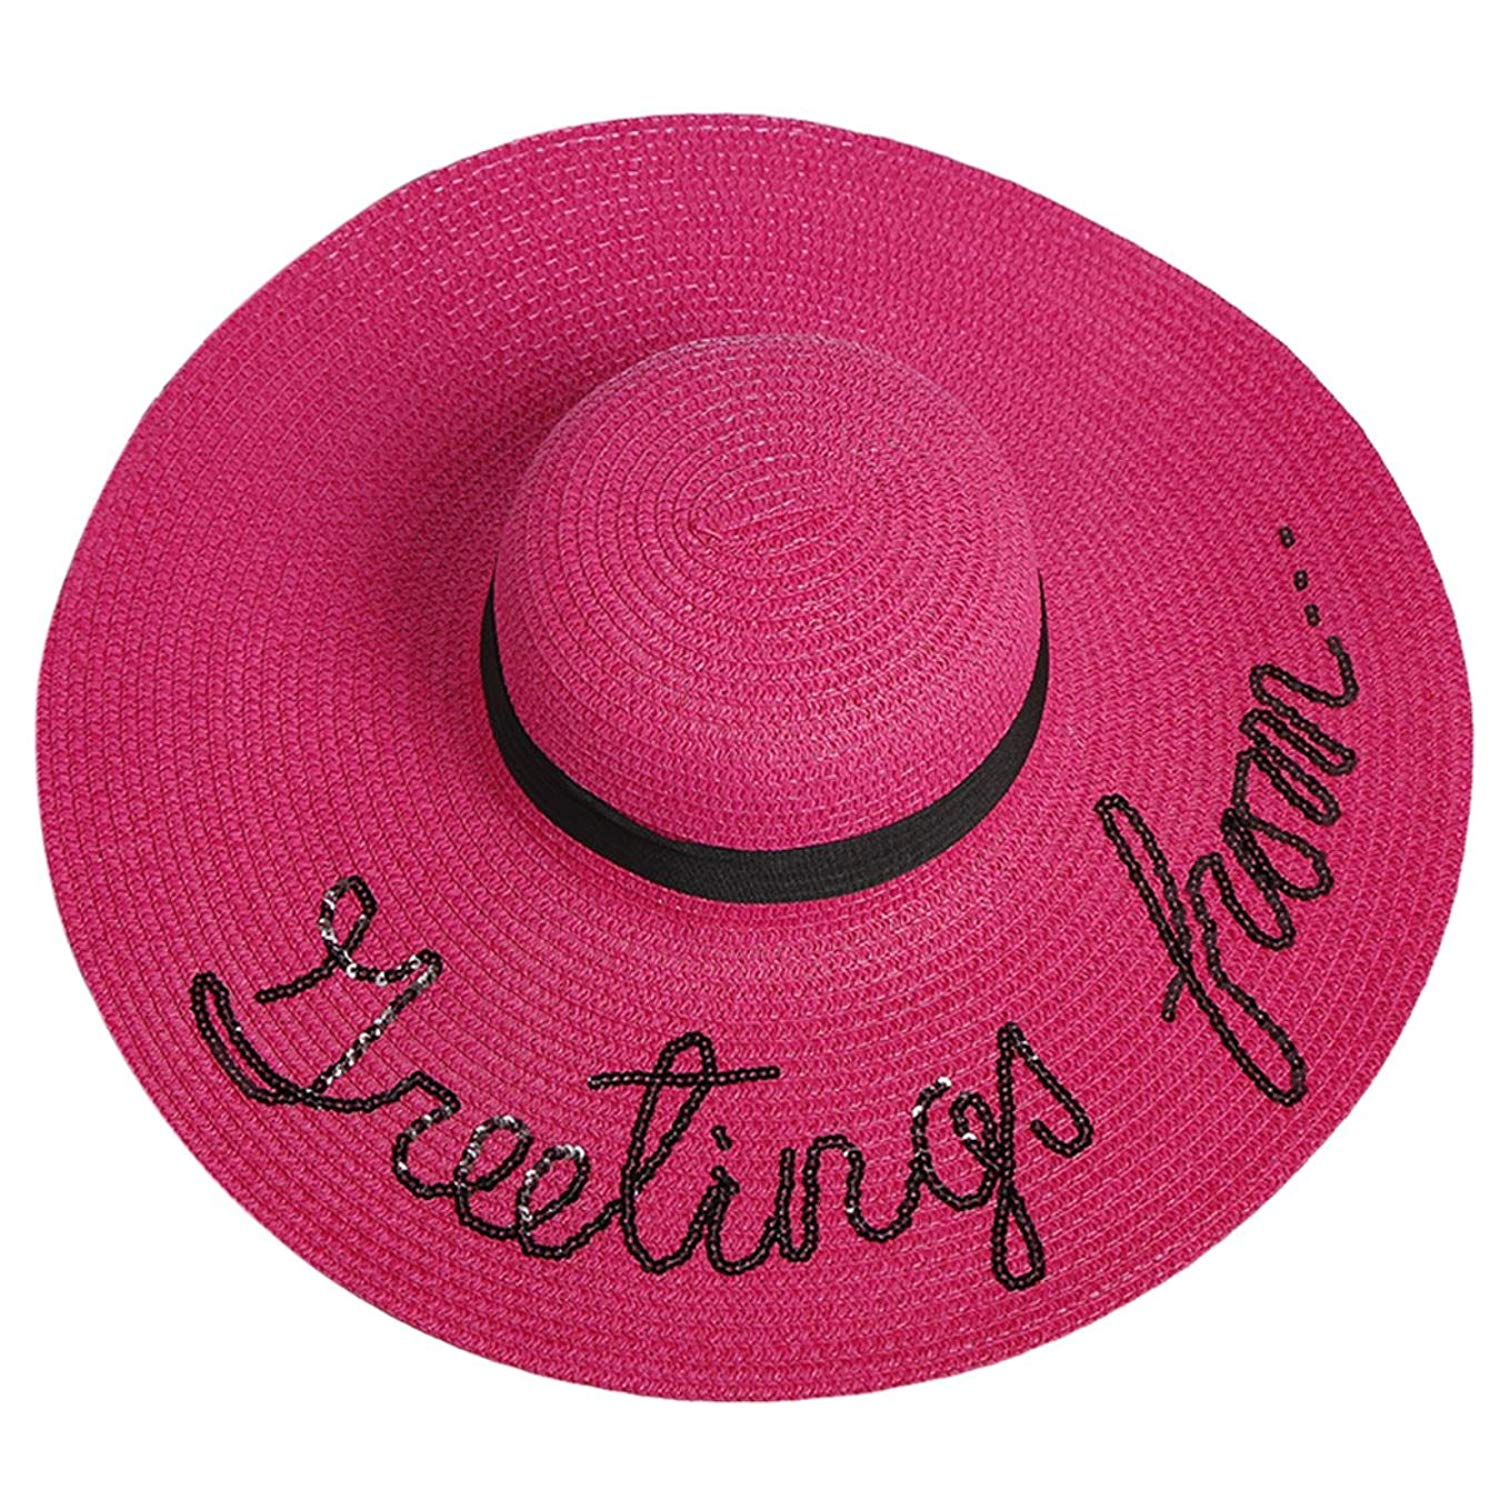 b08117af0e9 Get Quotations · Outdoor Letter Embroidery Cap Big Brim Ladies Summer Straw  Hat Youth Hats for Women Shade Sun